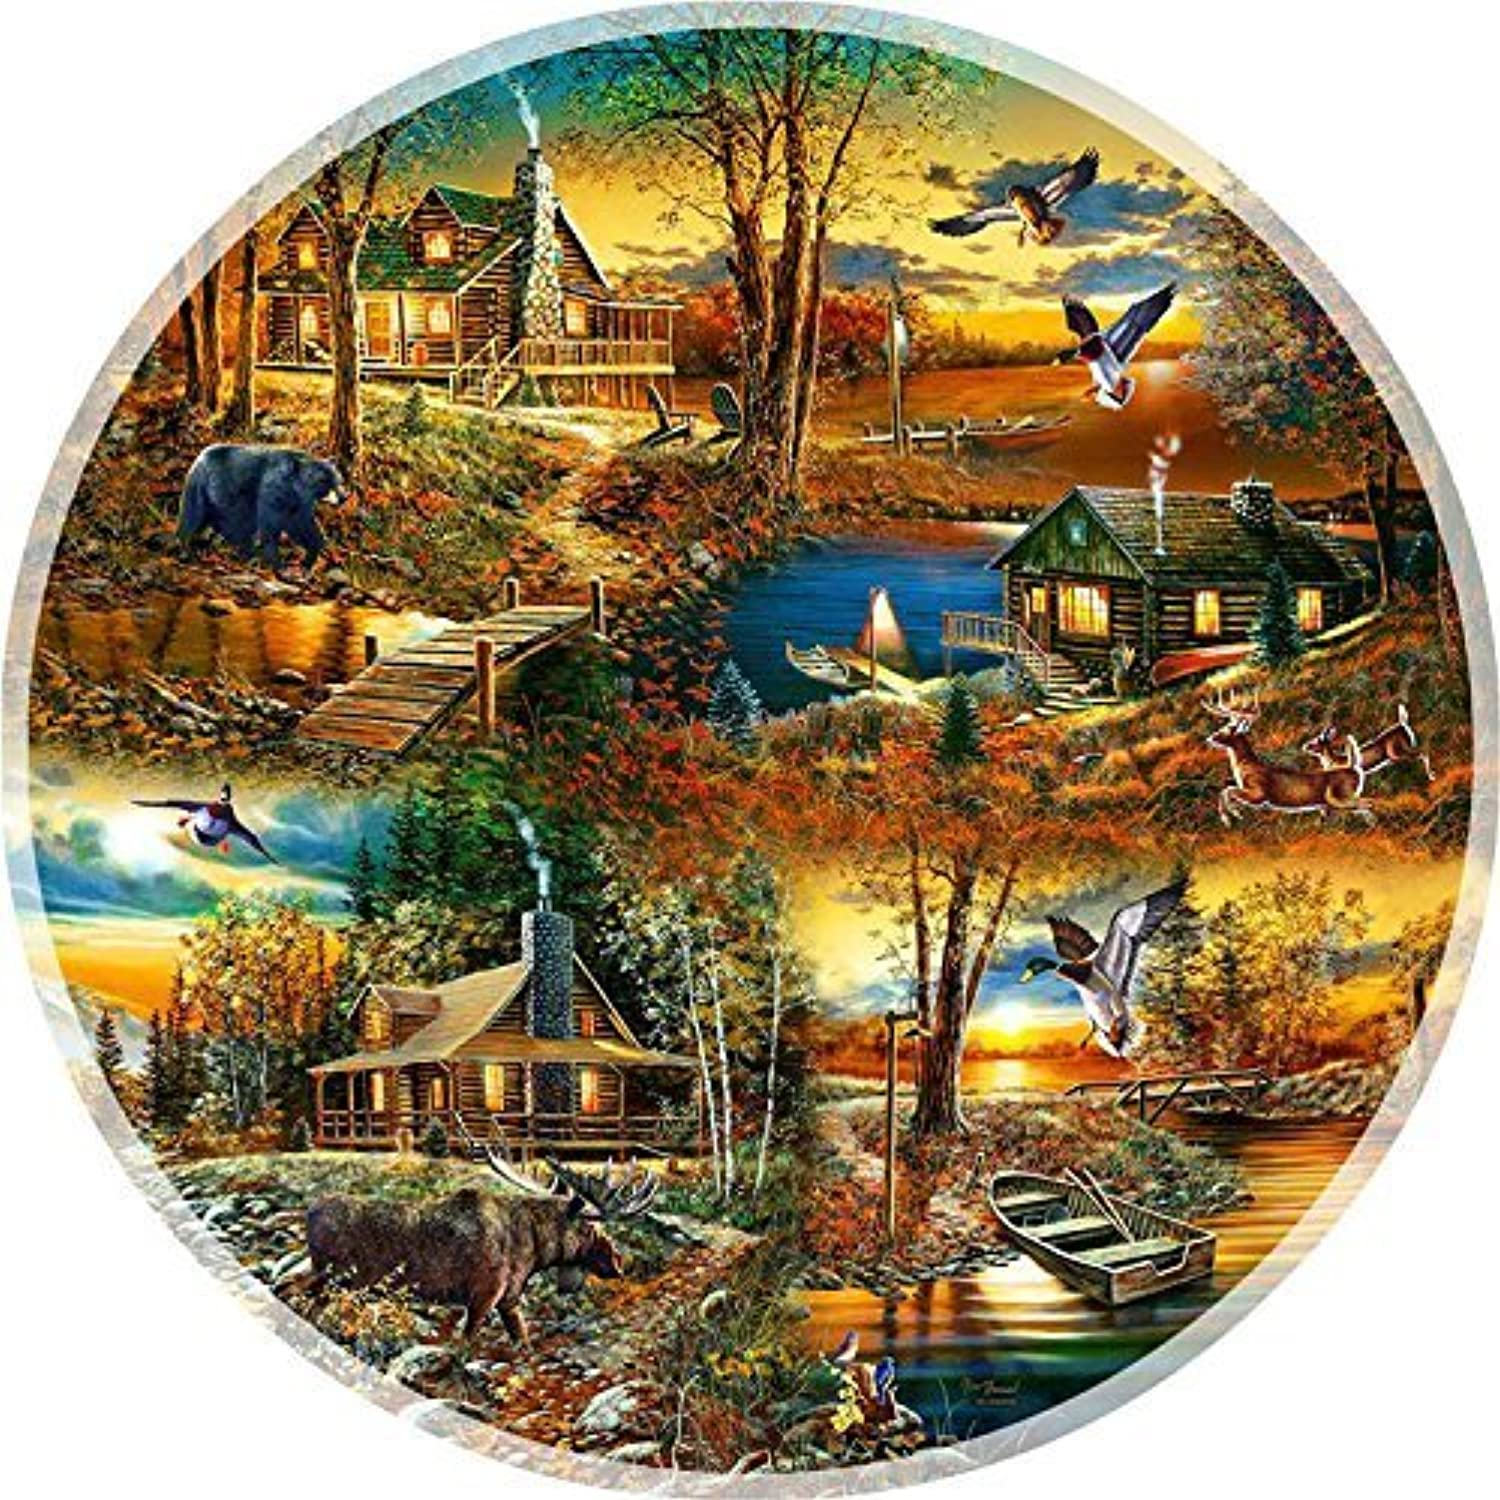 Cabins in the Woods  A 1000 Piece Jigsaw Puzzle by SunsOut by SunsOut